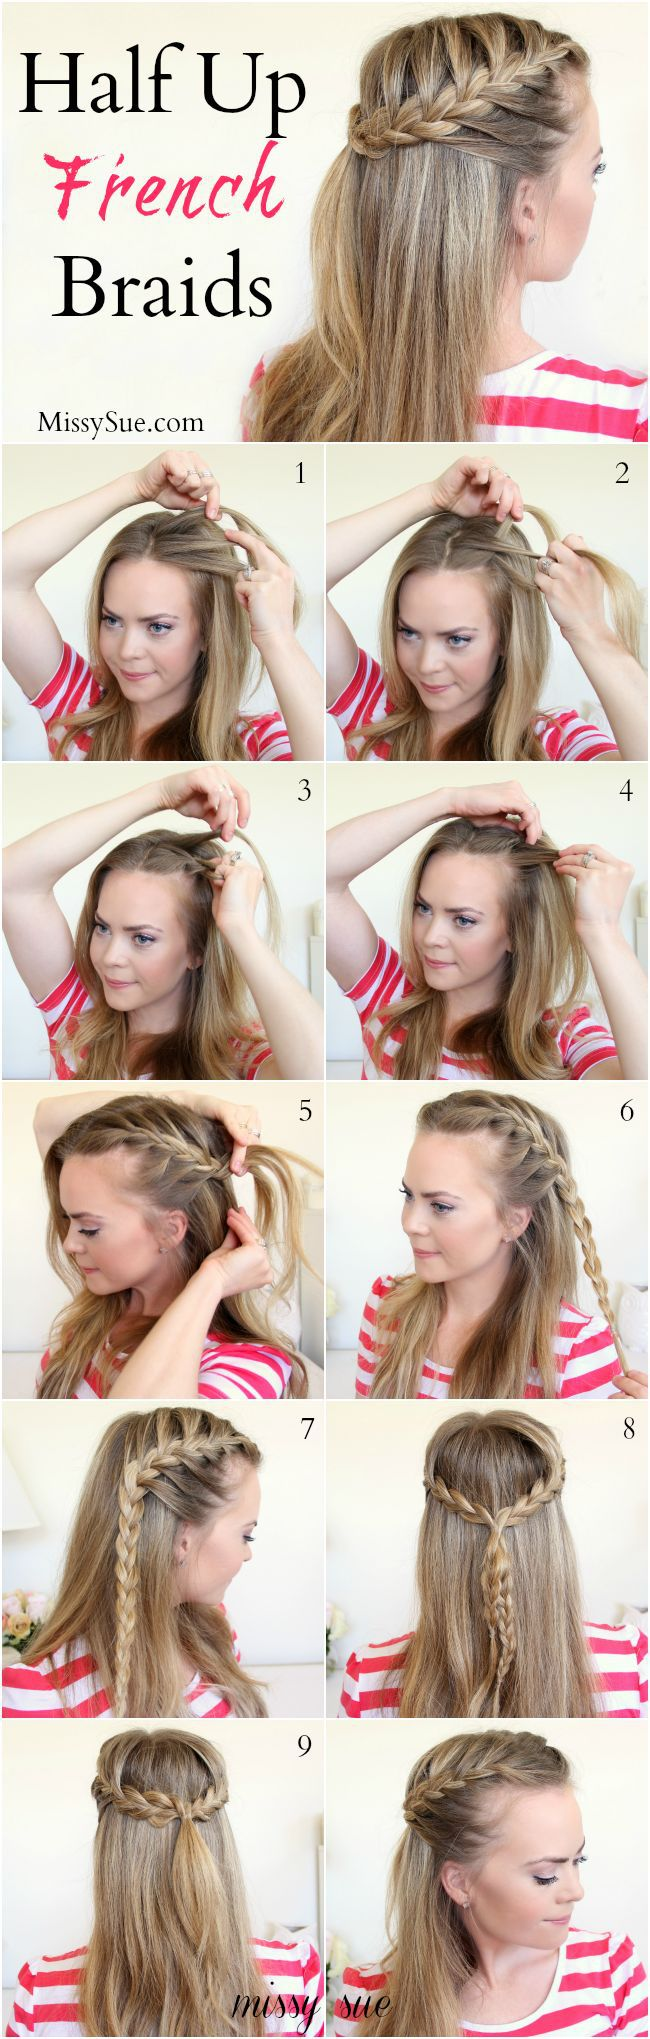 super cute and easy hairstyle tutorials that are quick and easy